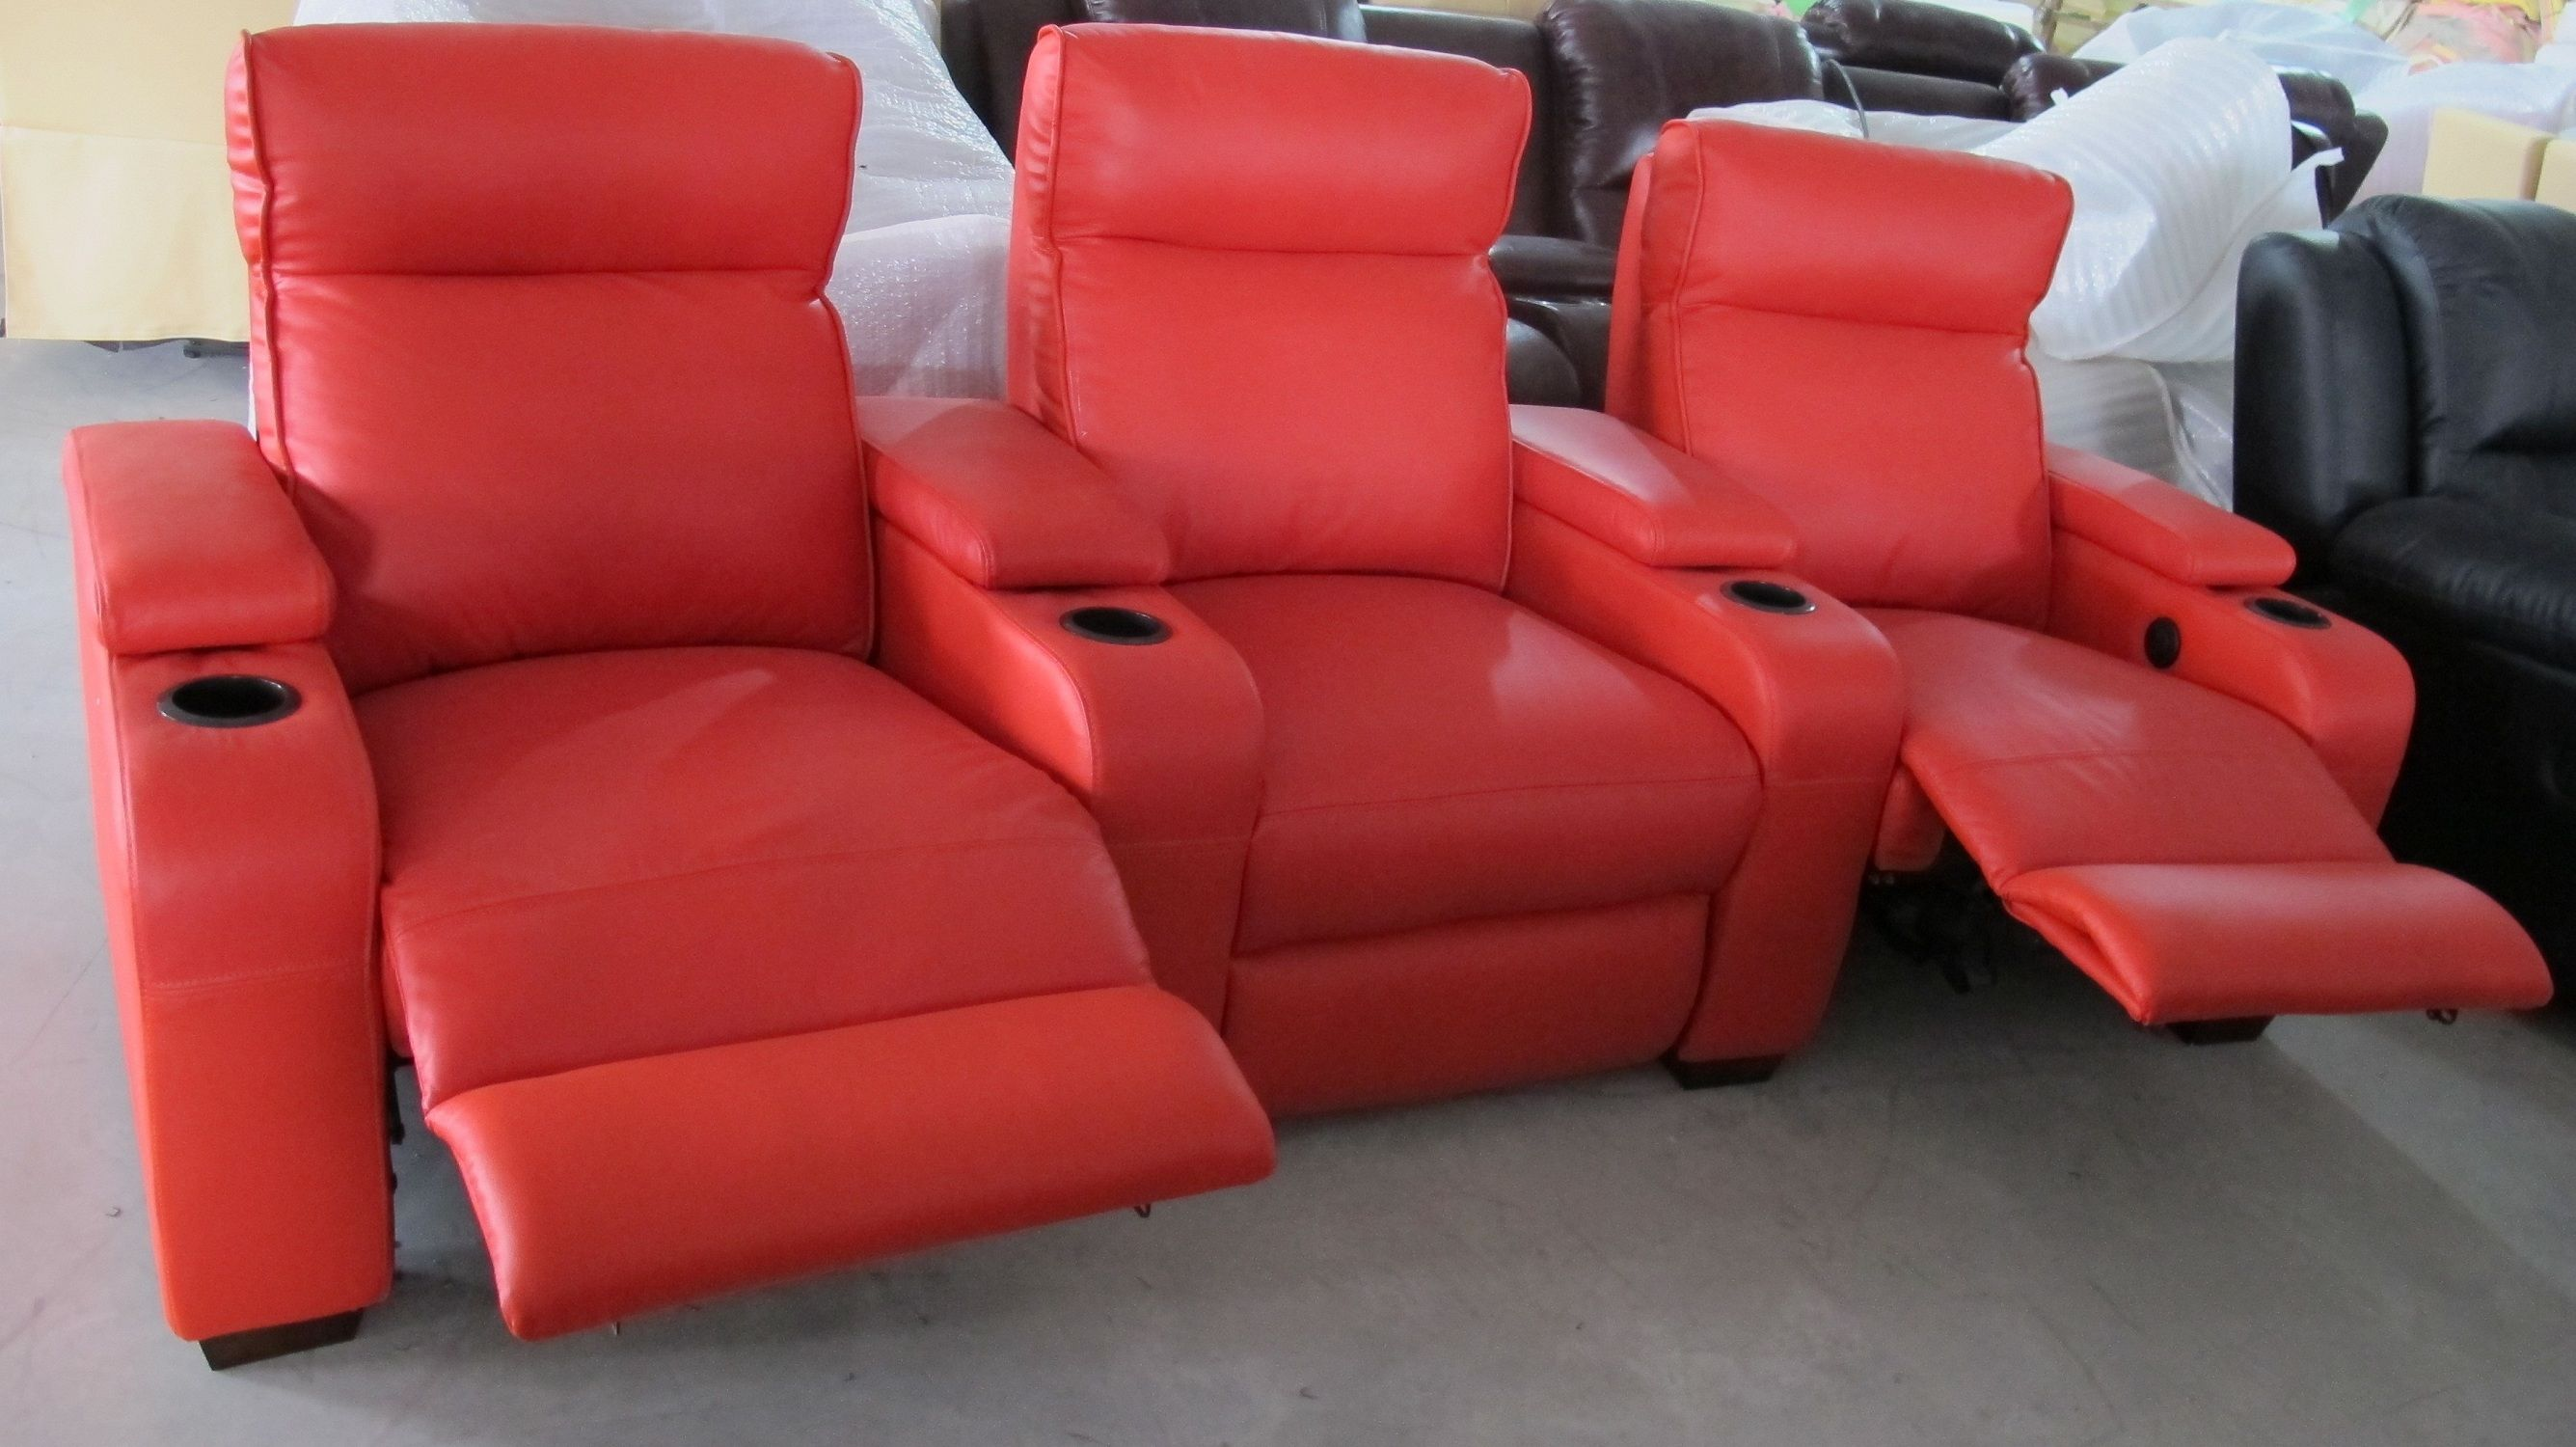 Furniture Lazyboy Sofas With A Vibrant Red Color Comfortable Lazyboy ...